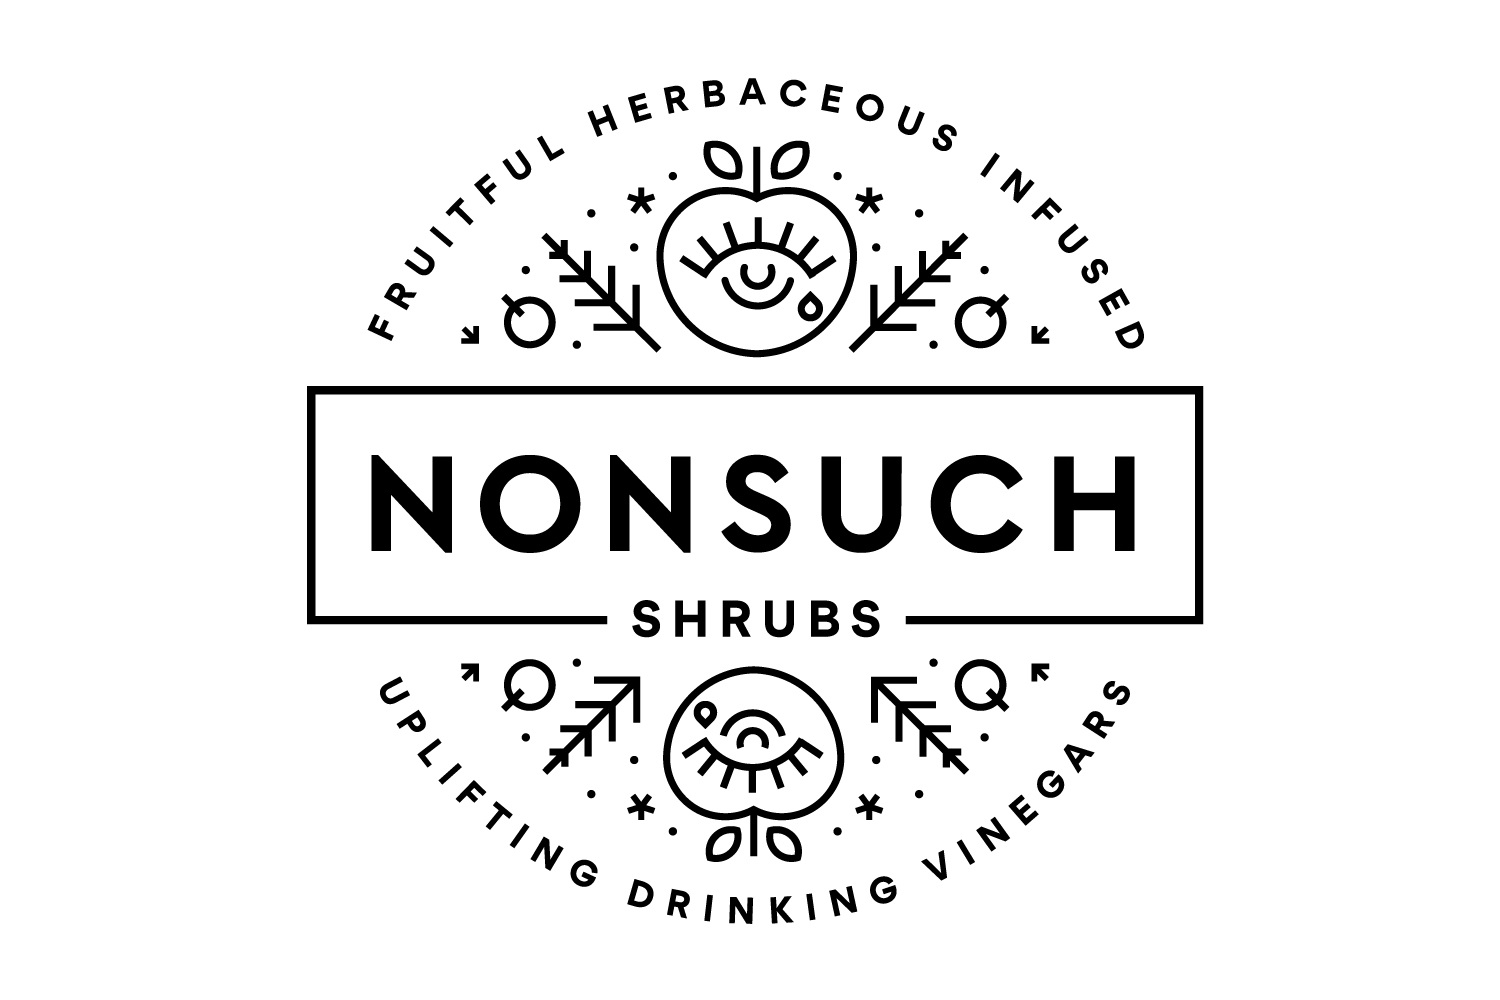 Nonsuch shrub drinks